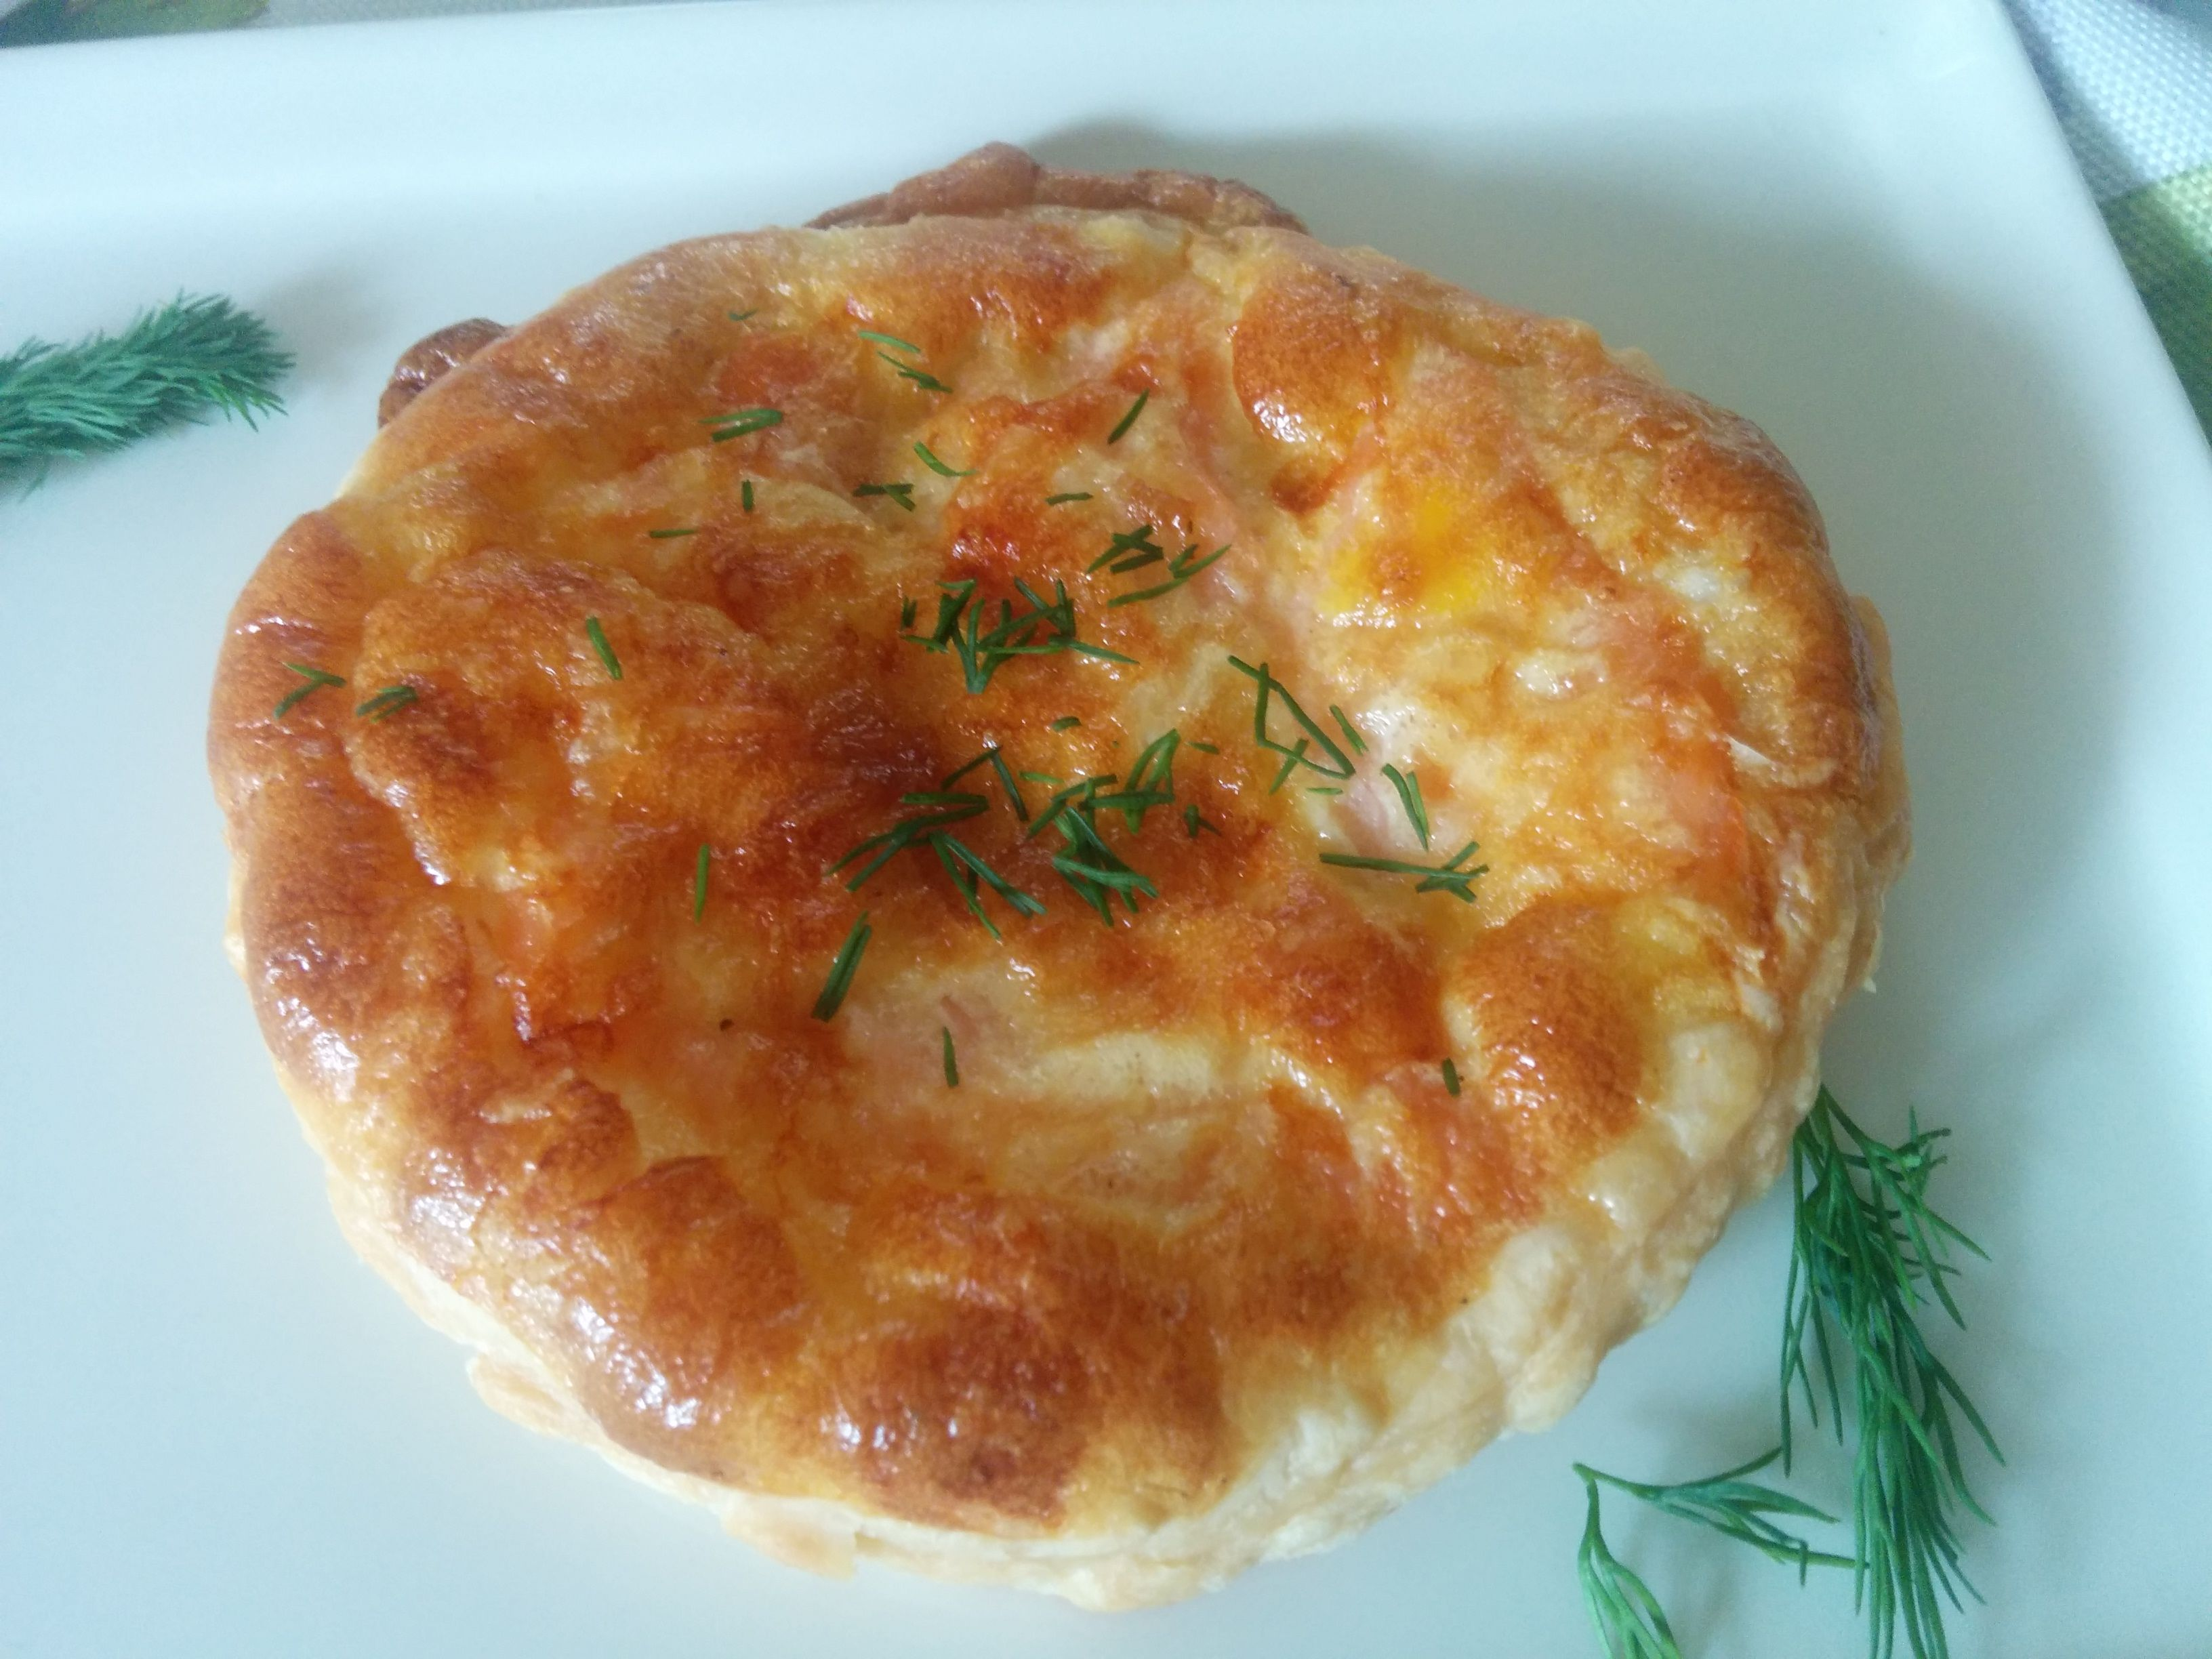 Savory Puff Pastry Tart with Smoked Salmon